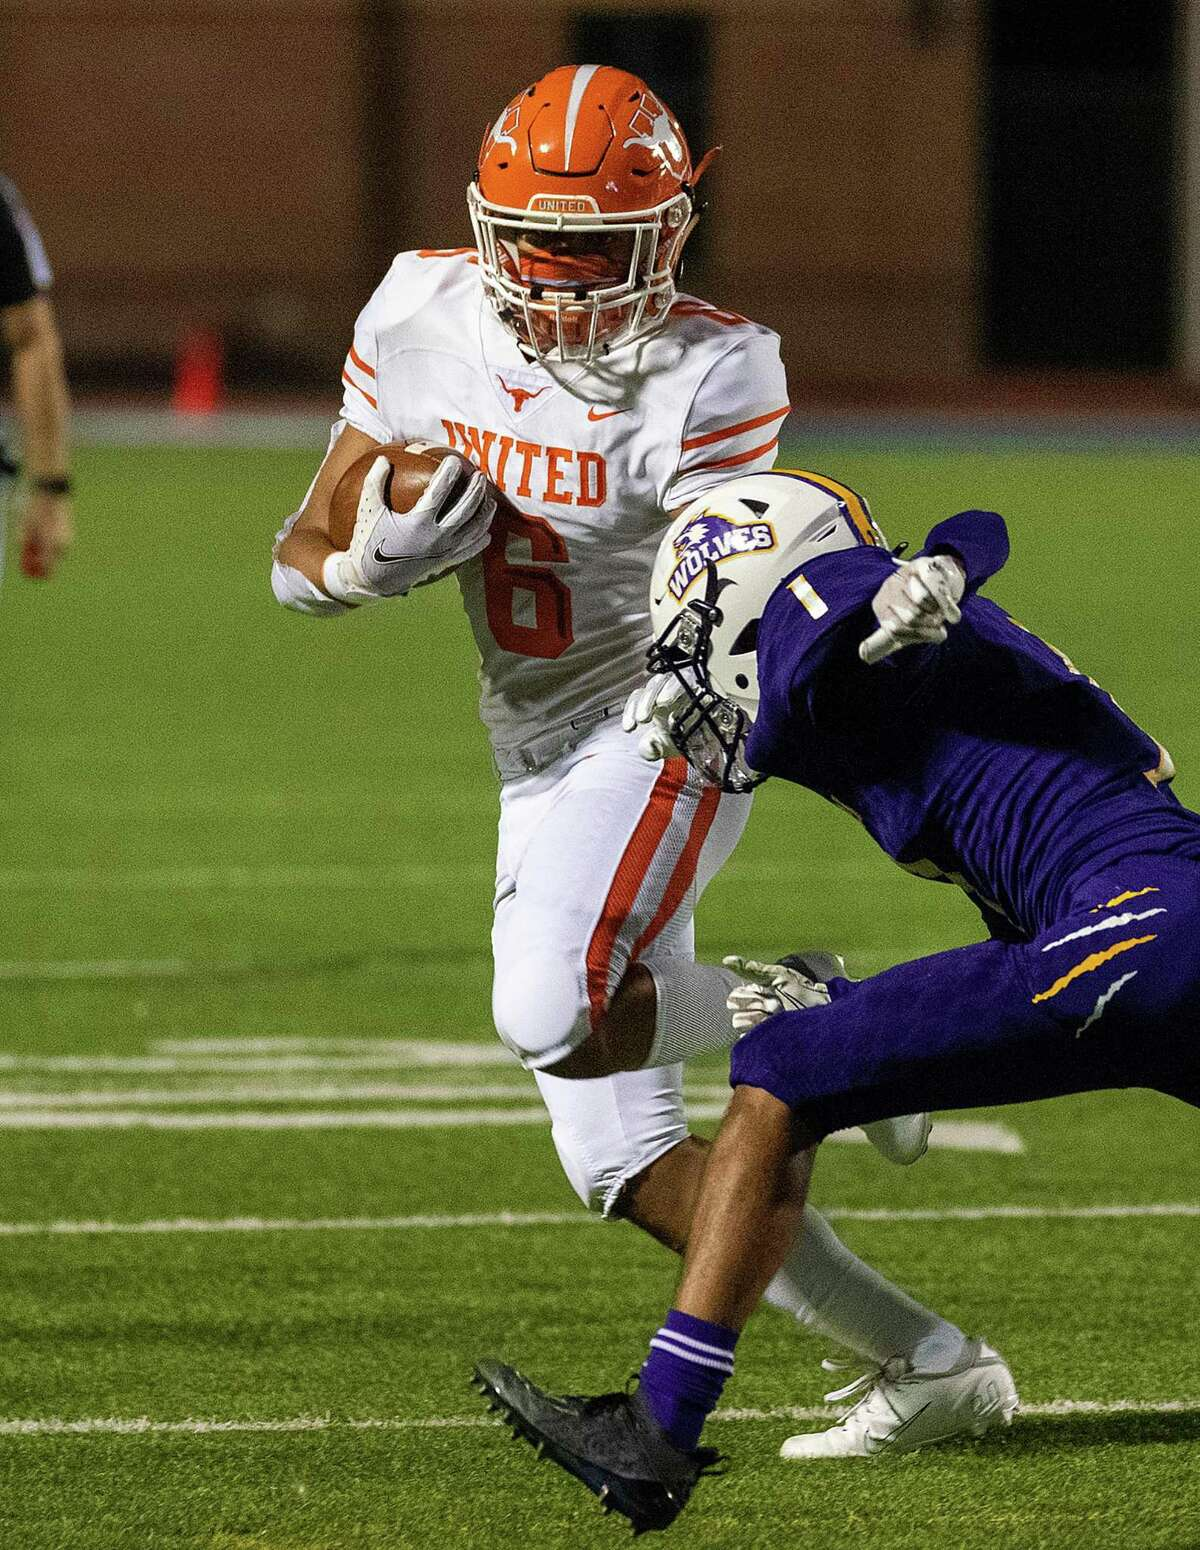 United running back Jalen Morris ran well in the Longhorns' victory over LBJ Friday.